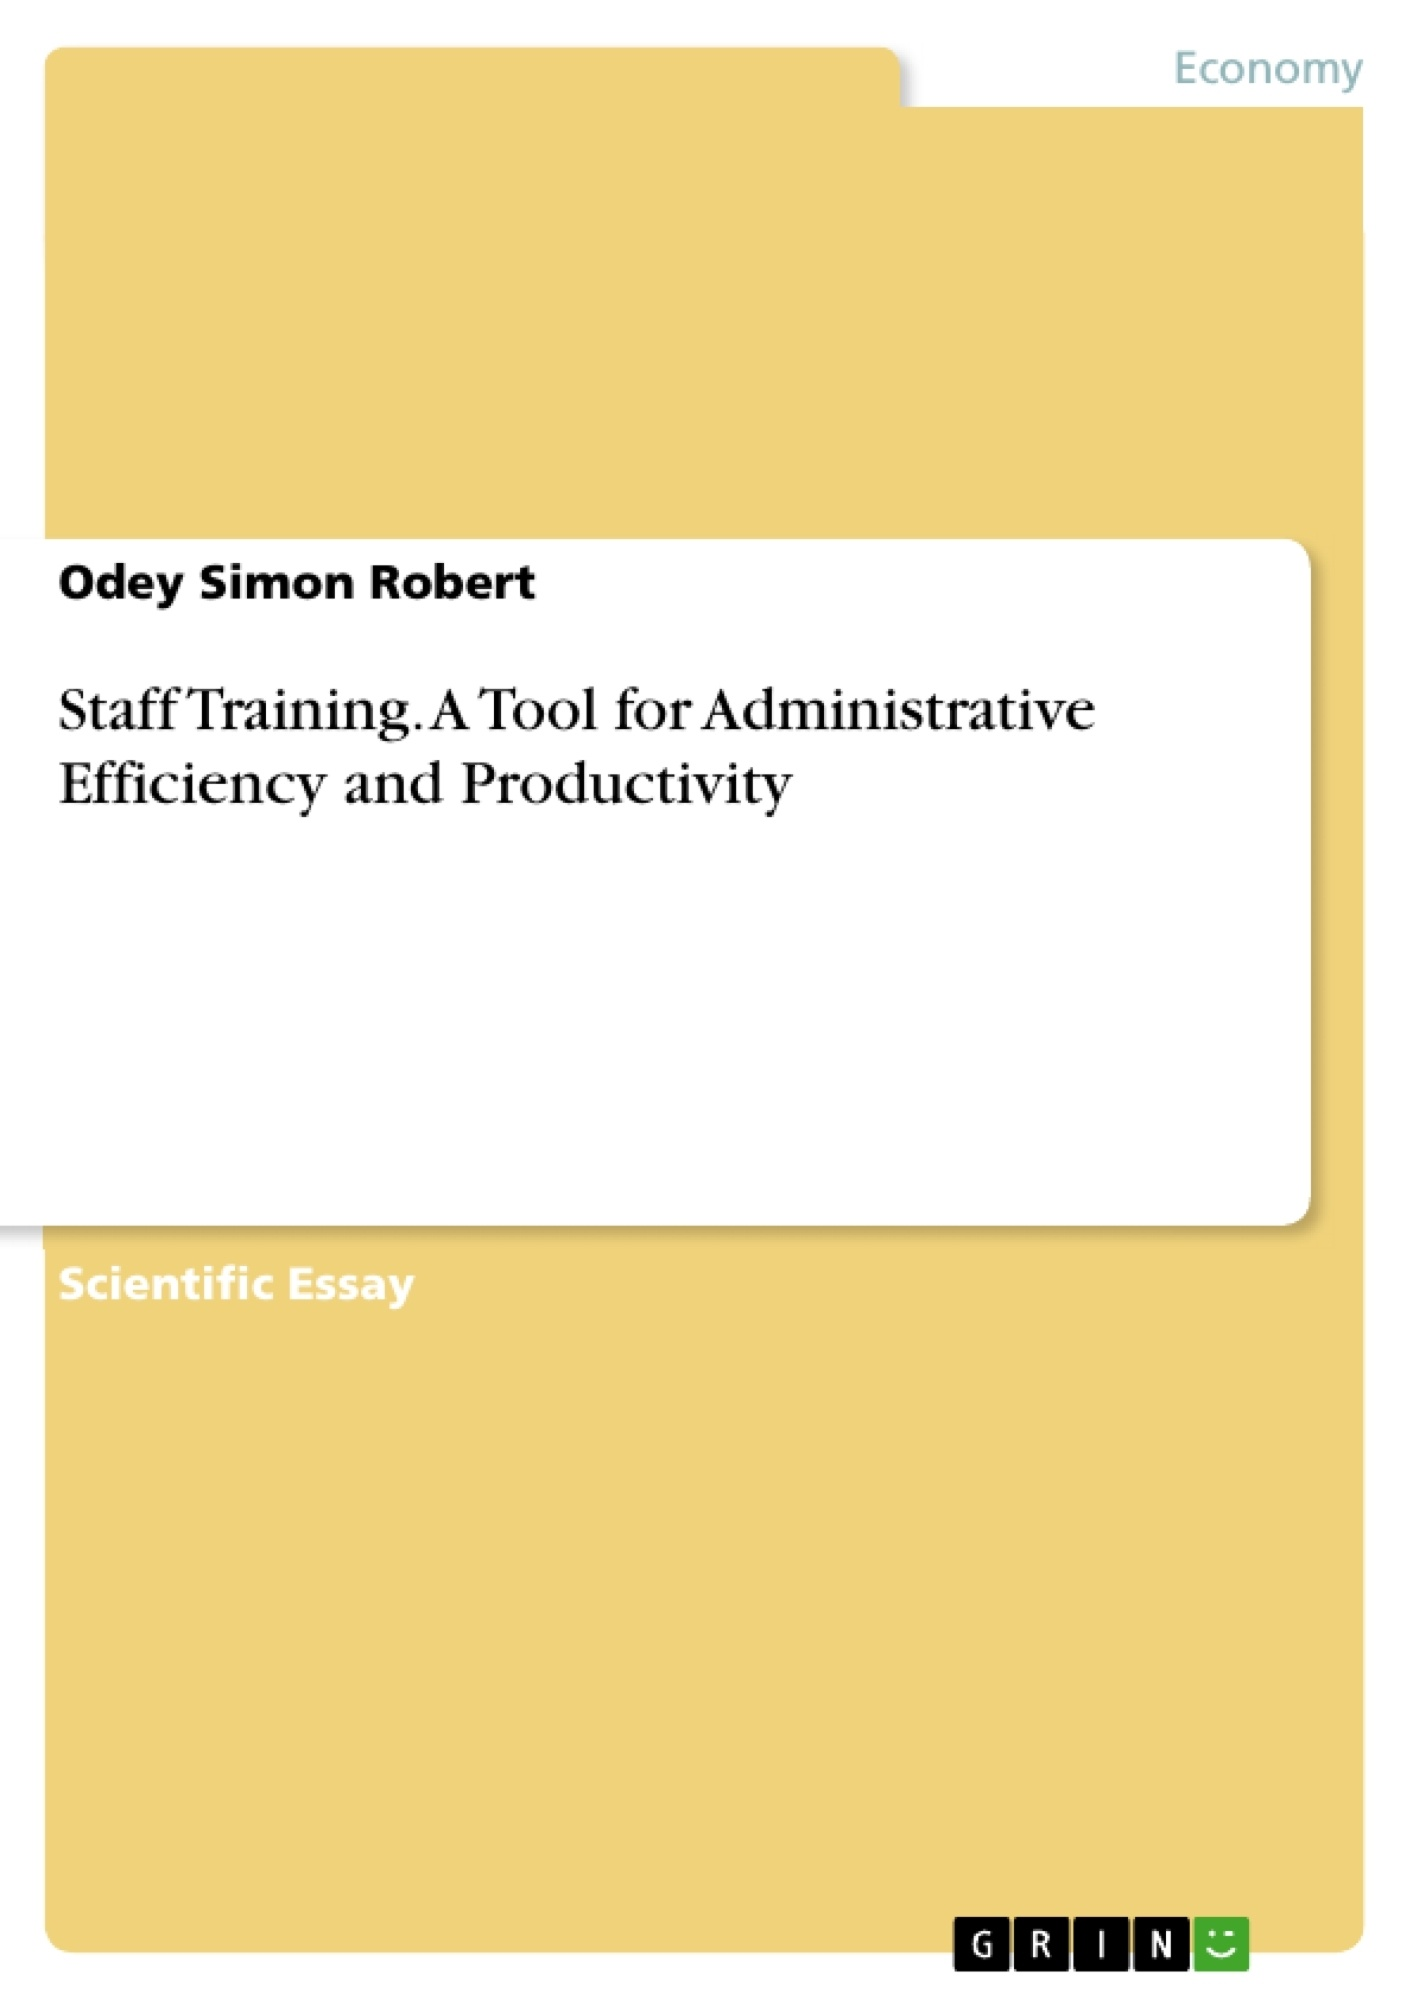 Title: Staff Training. A Tool for Administrative Efficiency and Productivity